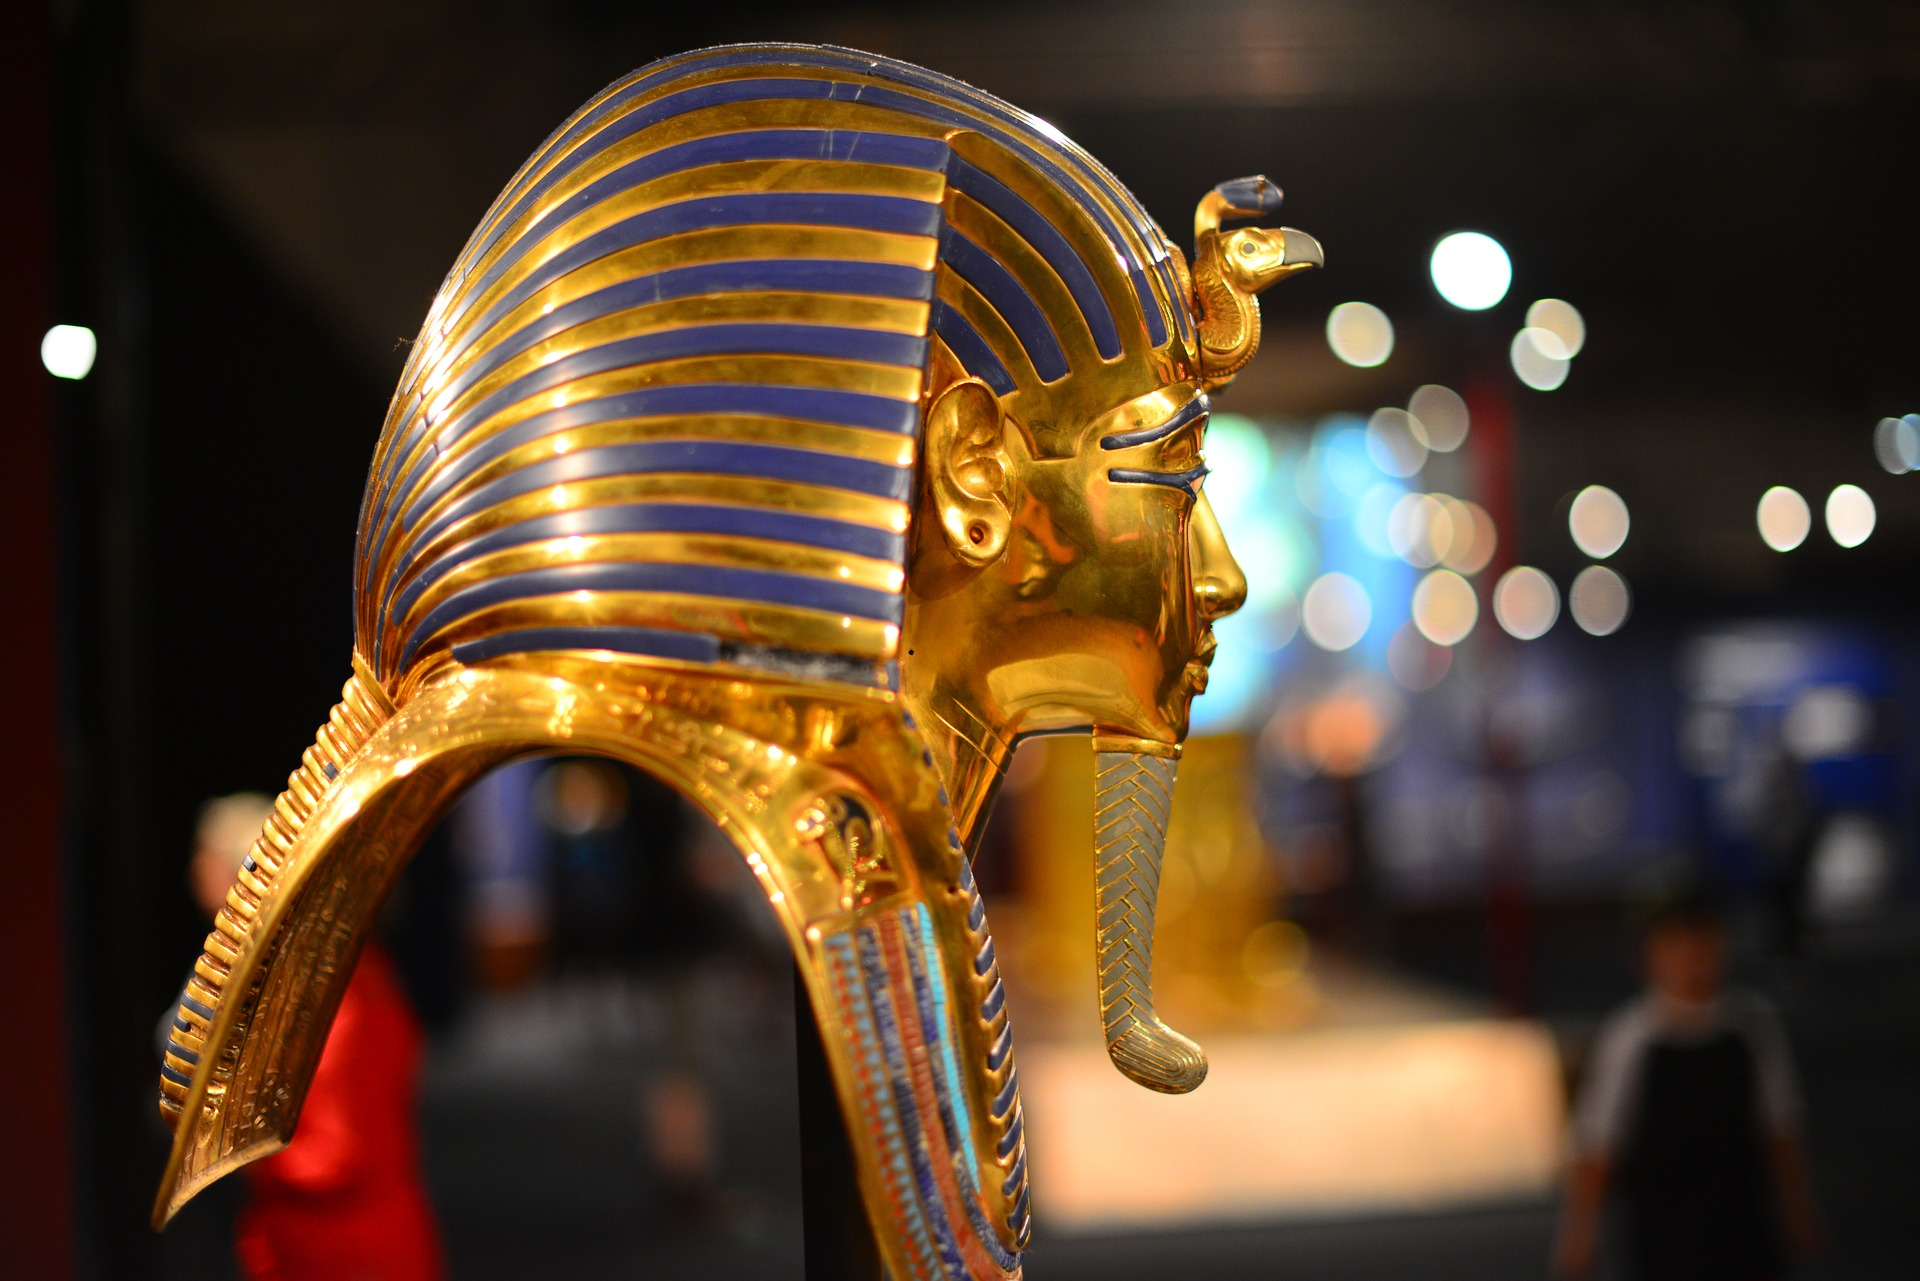 Information About King Tutankhamun | Ancient Egypt | Egypt Tours Portal